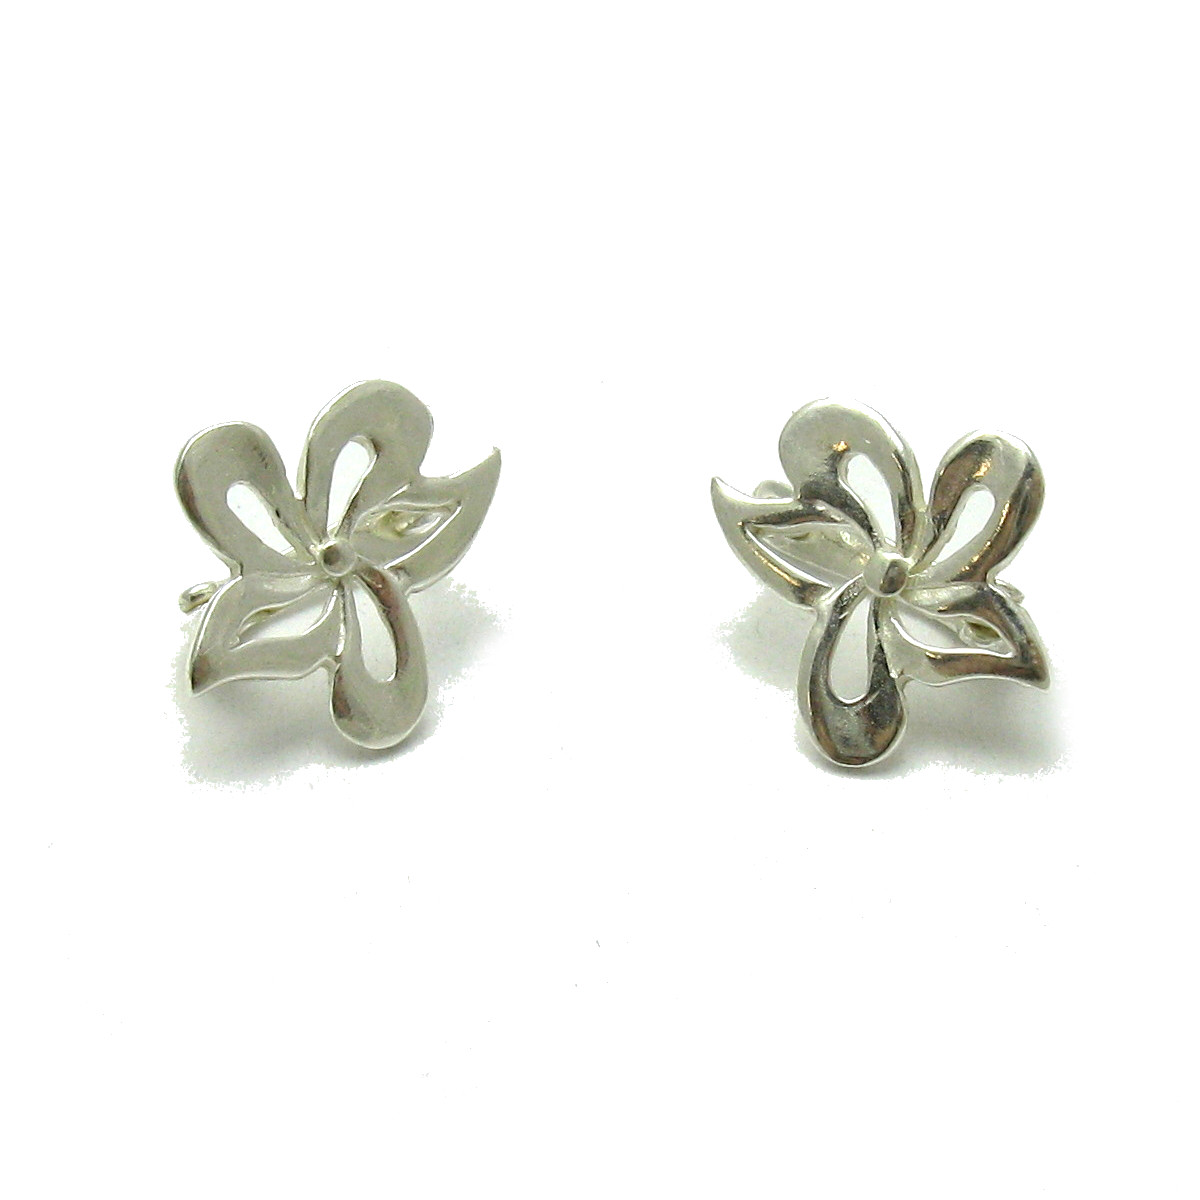 Silver earrings - E000622